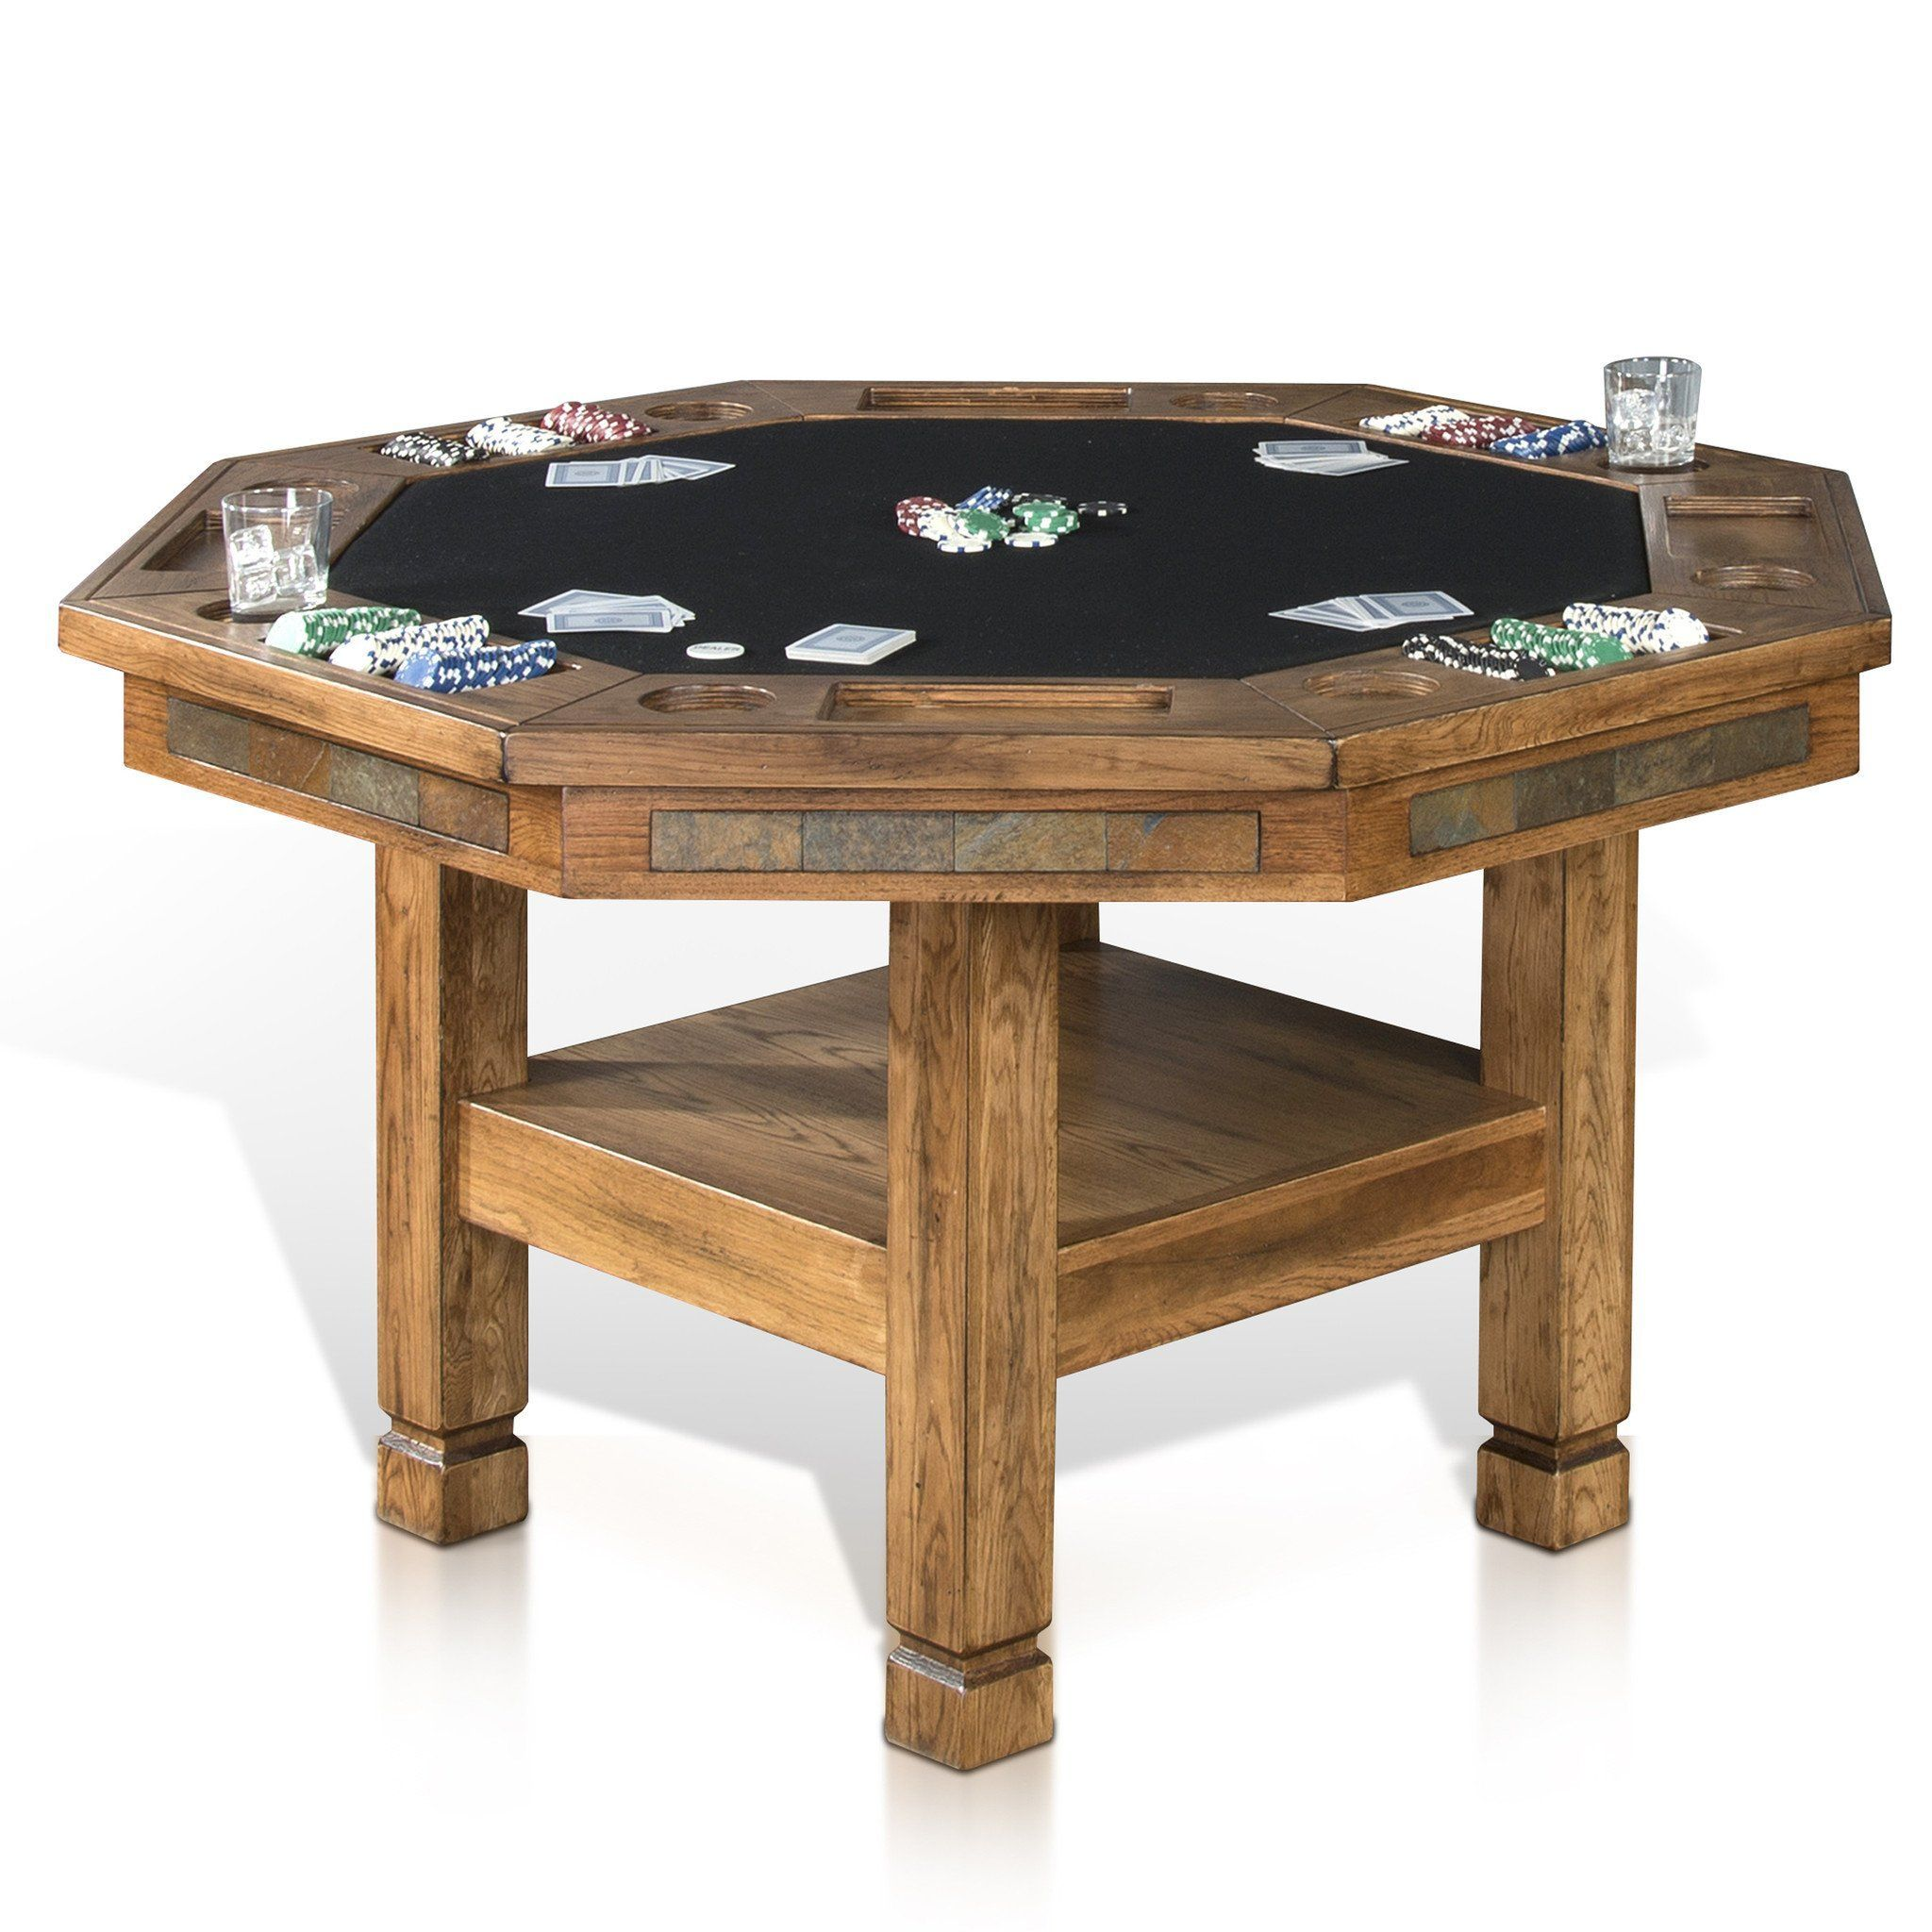 Sunny designs poker table baccarat odds at casino